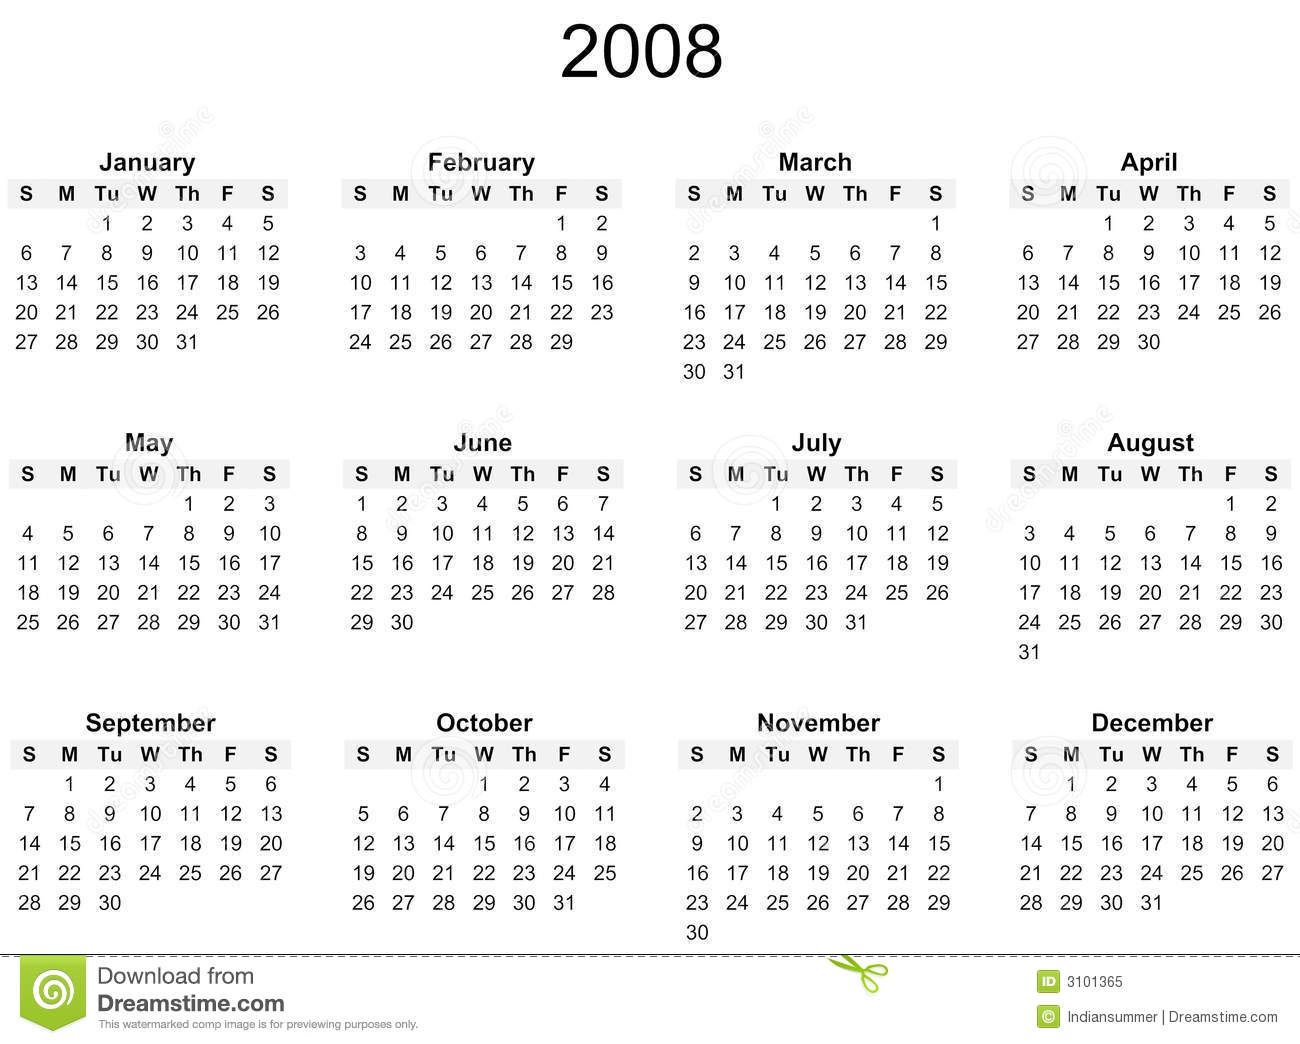 2008 Year calendar, simple black and white against white background.